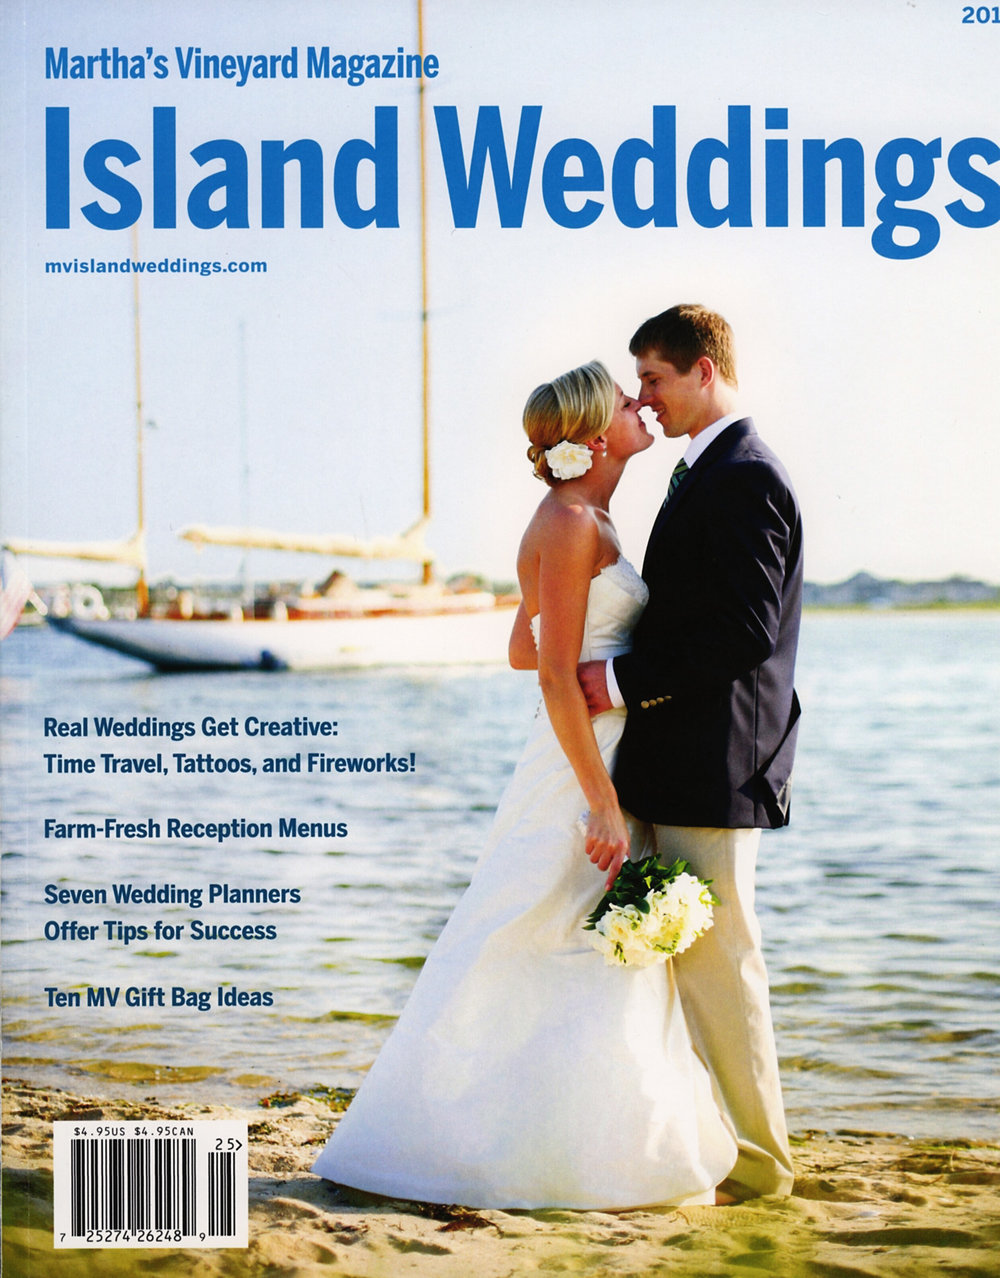 MvIsland weddings